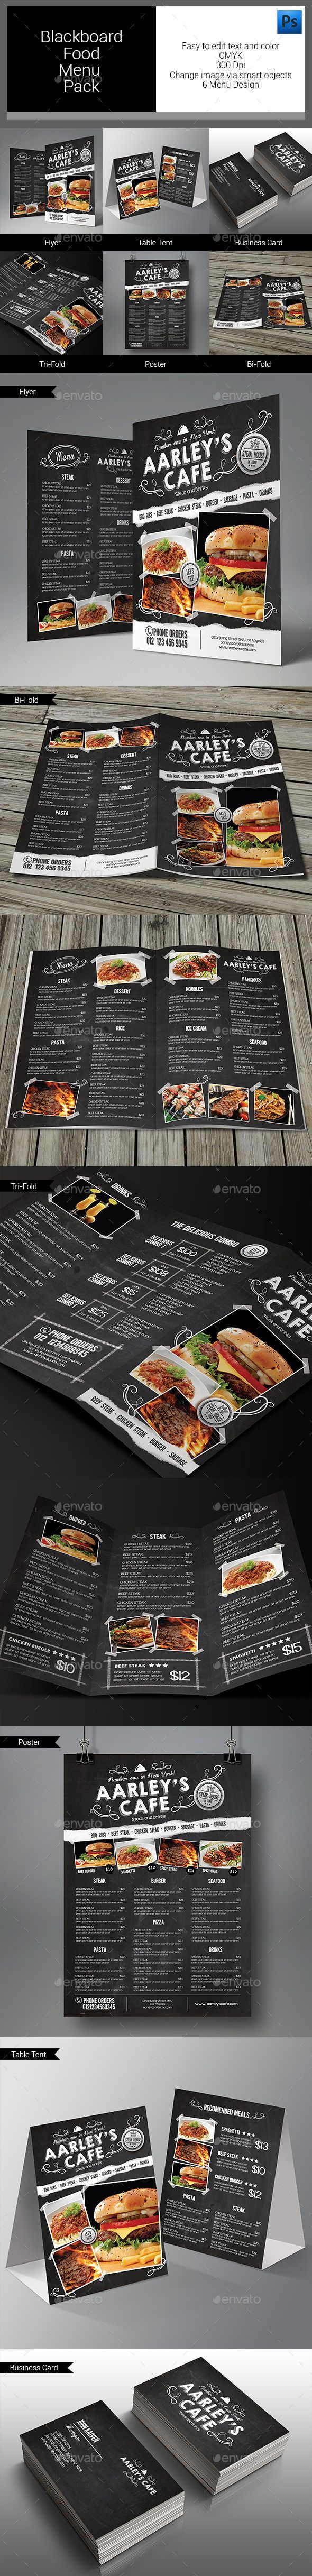 Blackboard Food Menu Bundle Template #design Download: http://graphicriver.net/item/blackboard-food-menu-bundle/11020267?ref=ksioks